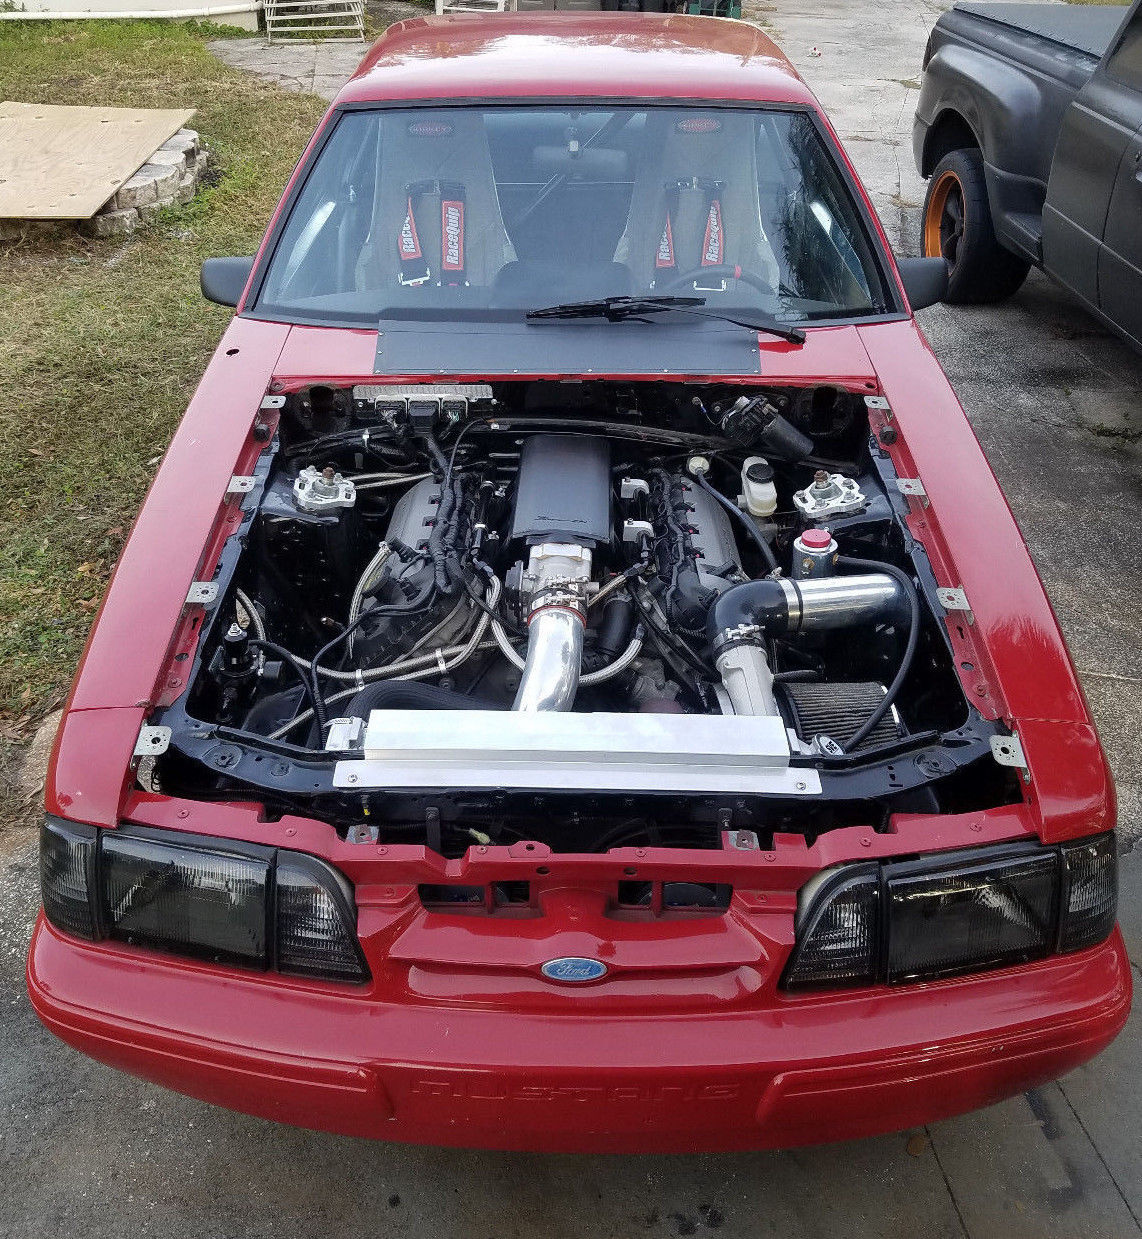 Great 1988 Ford Mustang LX Turbo Coyote Swap Fox Body